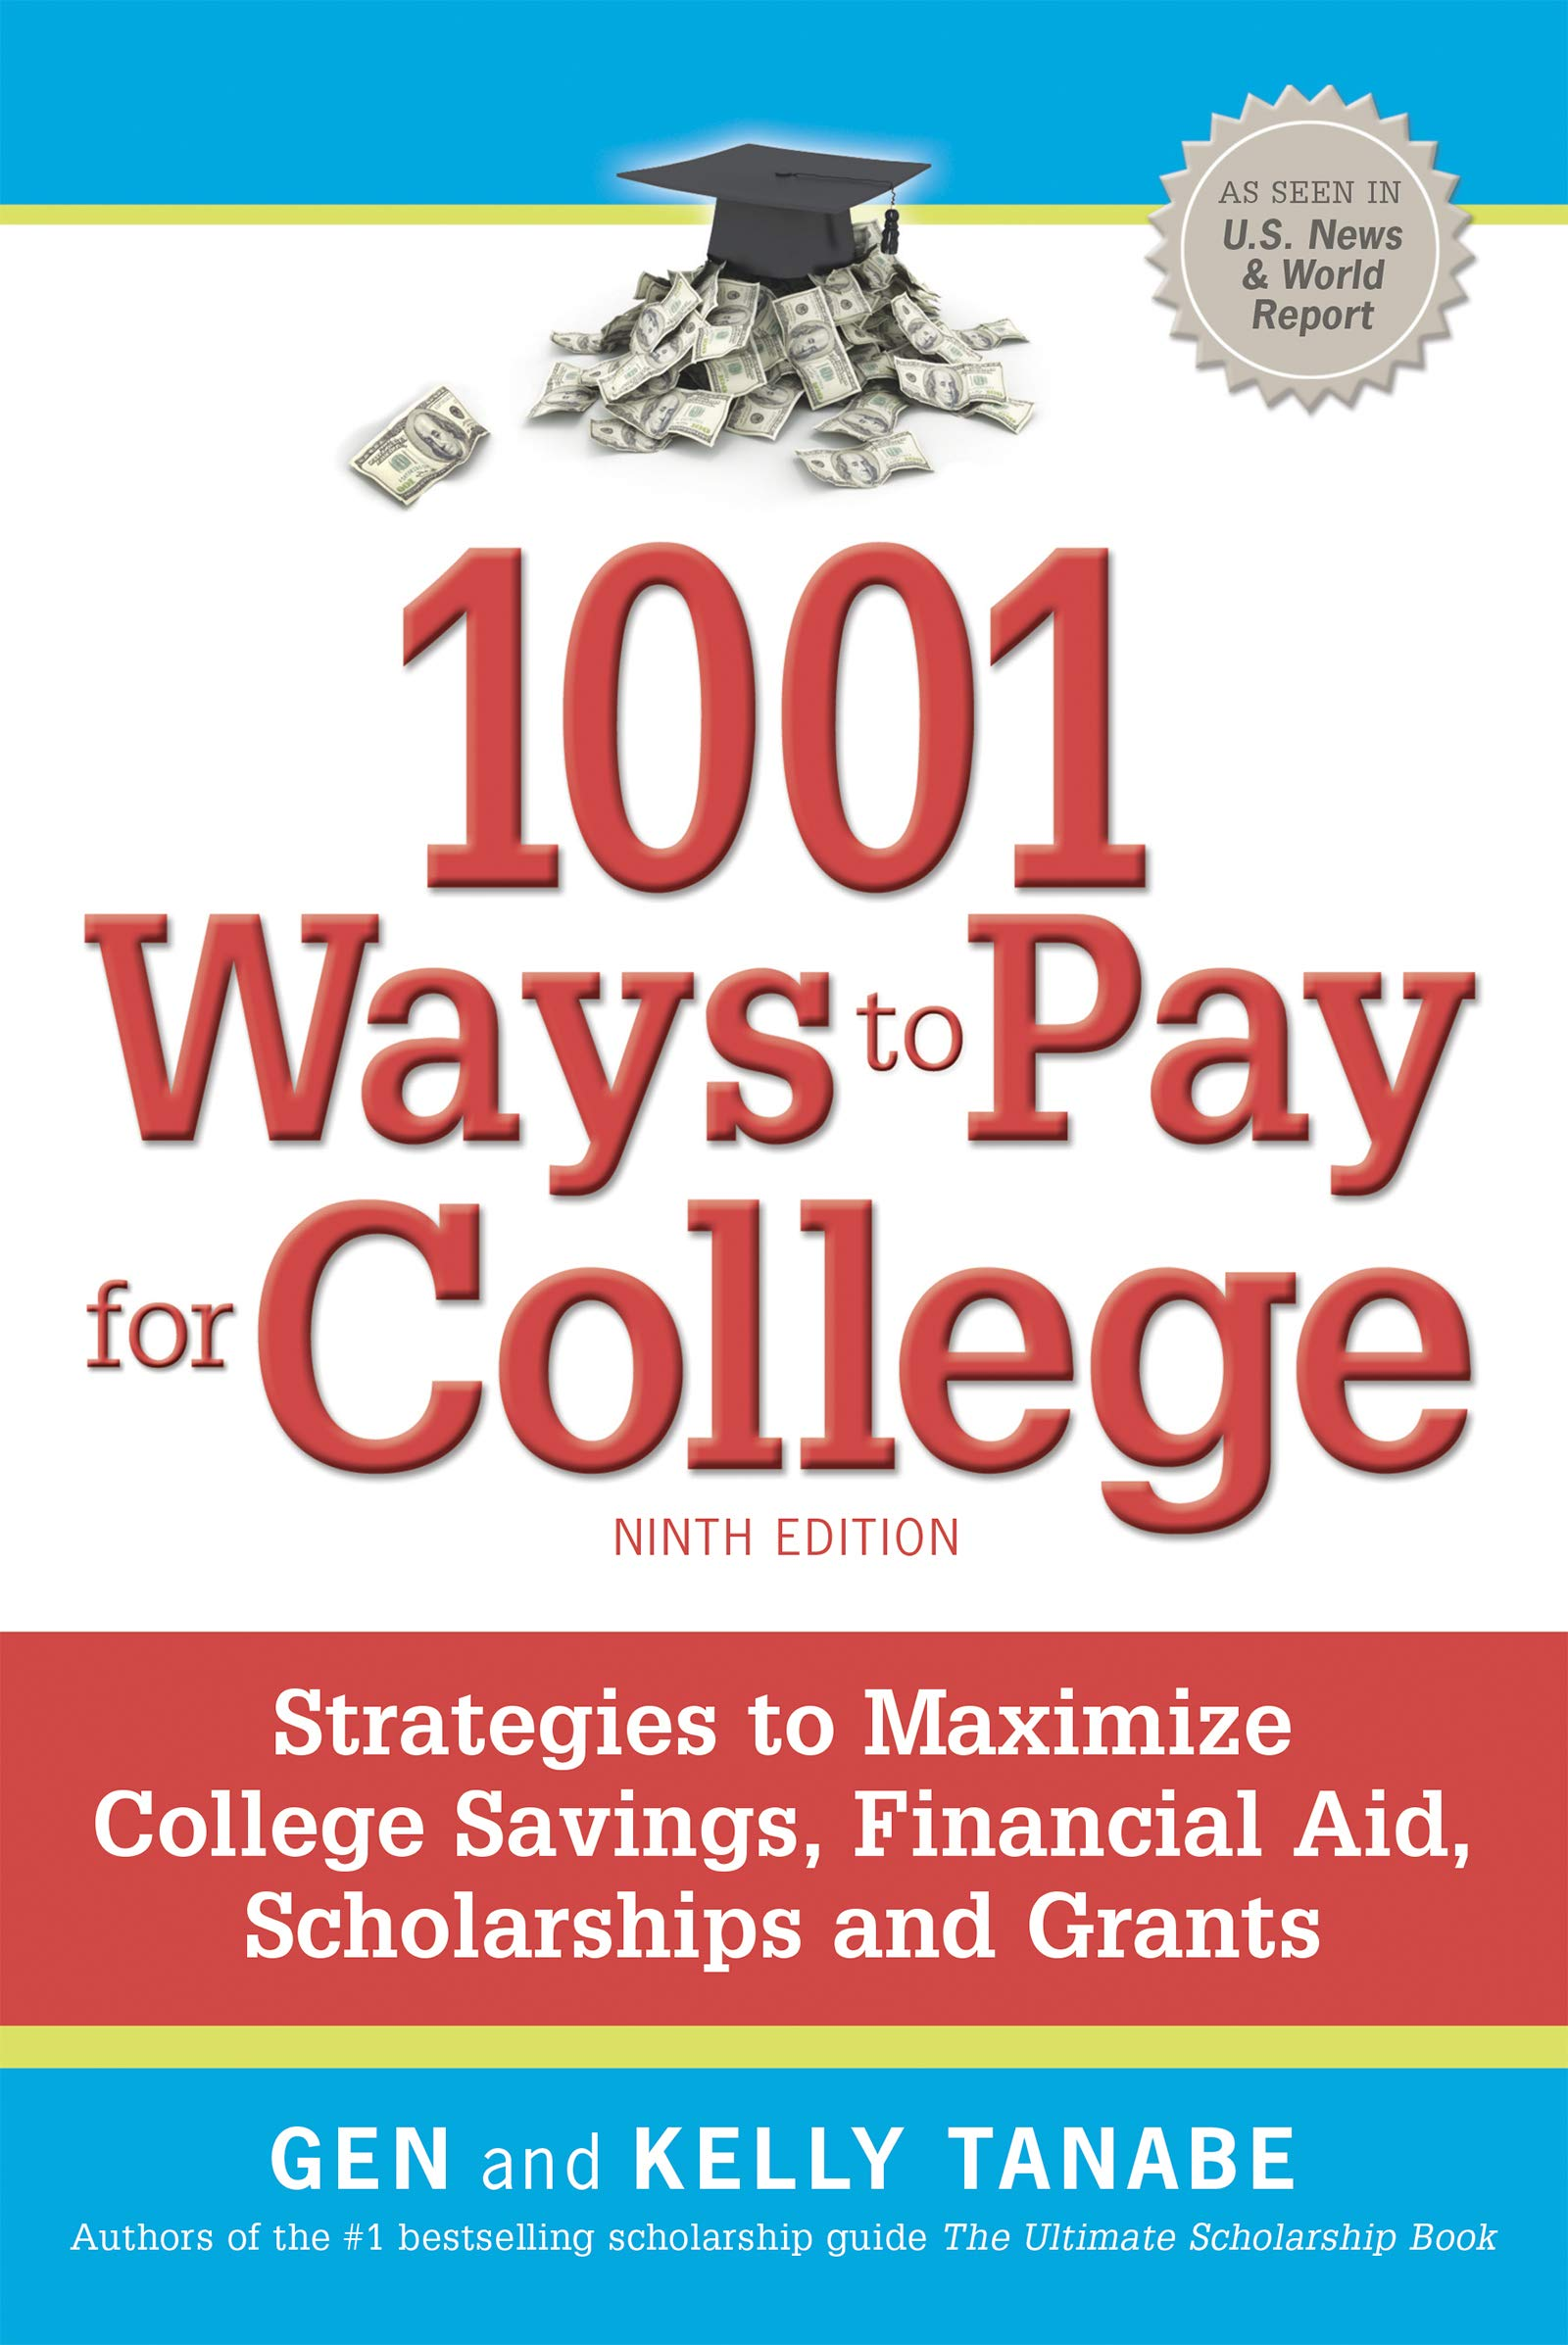 Book Cover: 1001 Ways to Pay for College: Strategies to Maximize Financial Aid, Scholarships and Grants